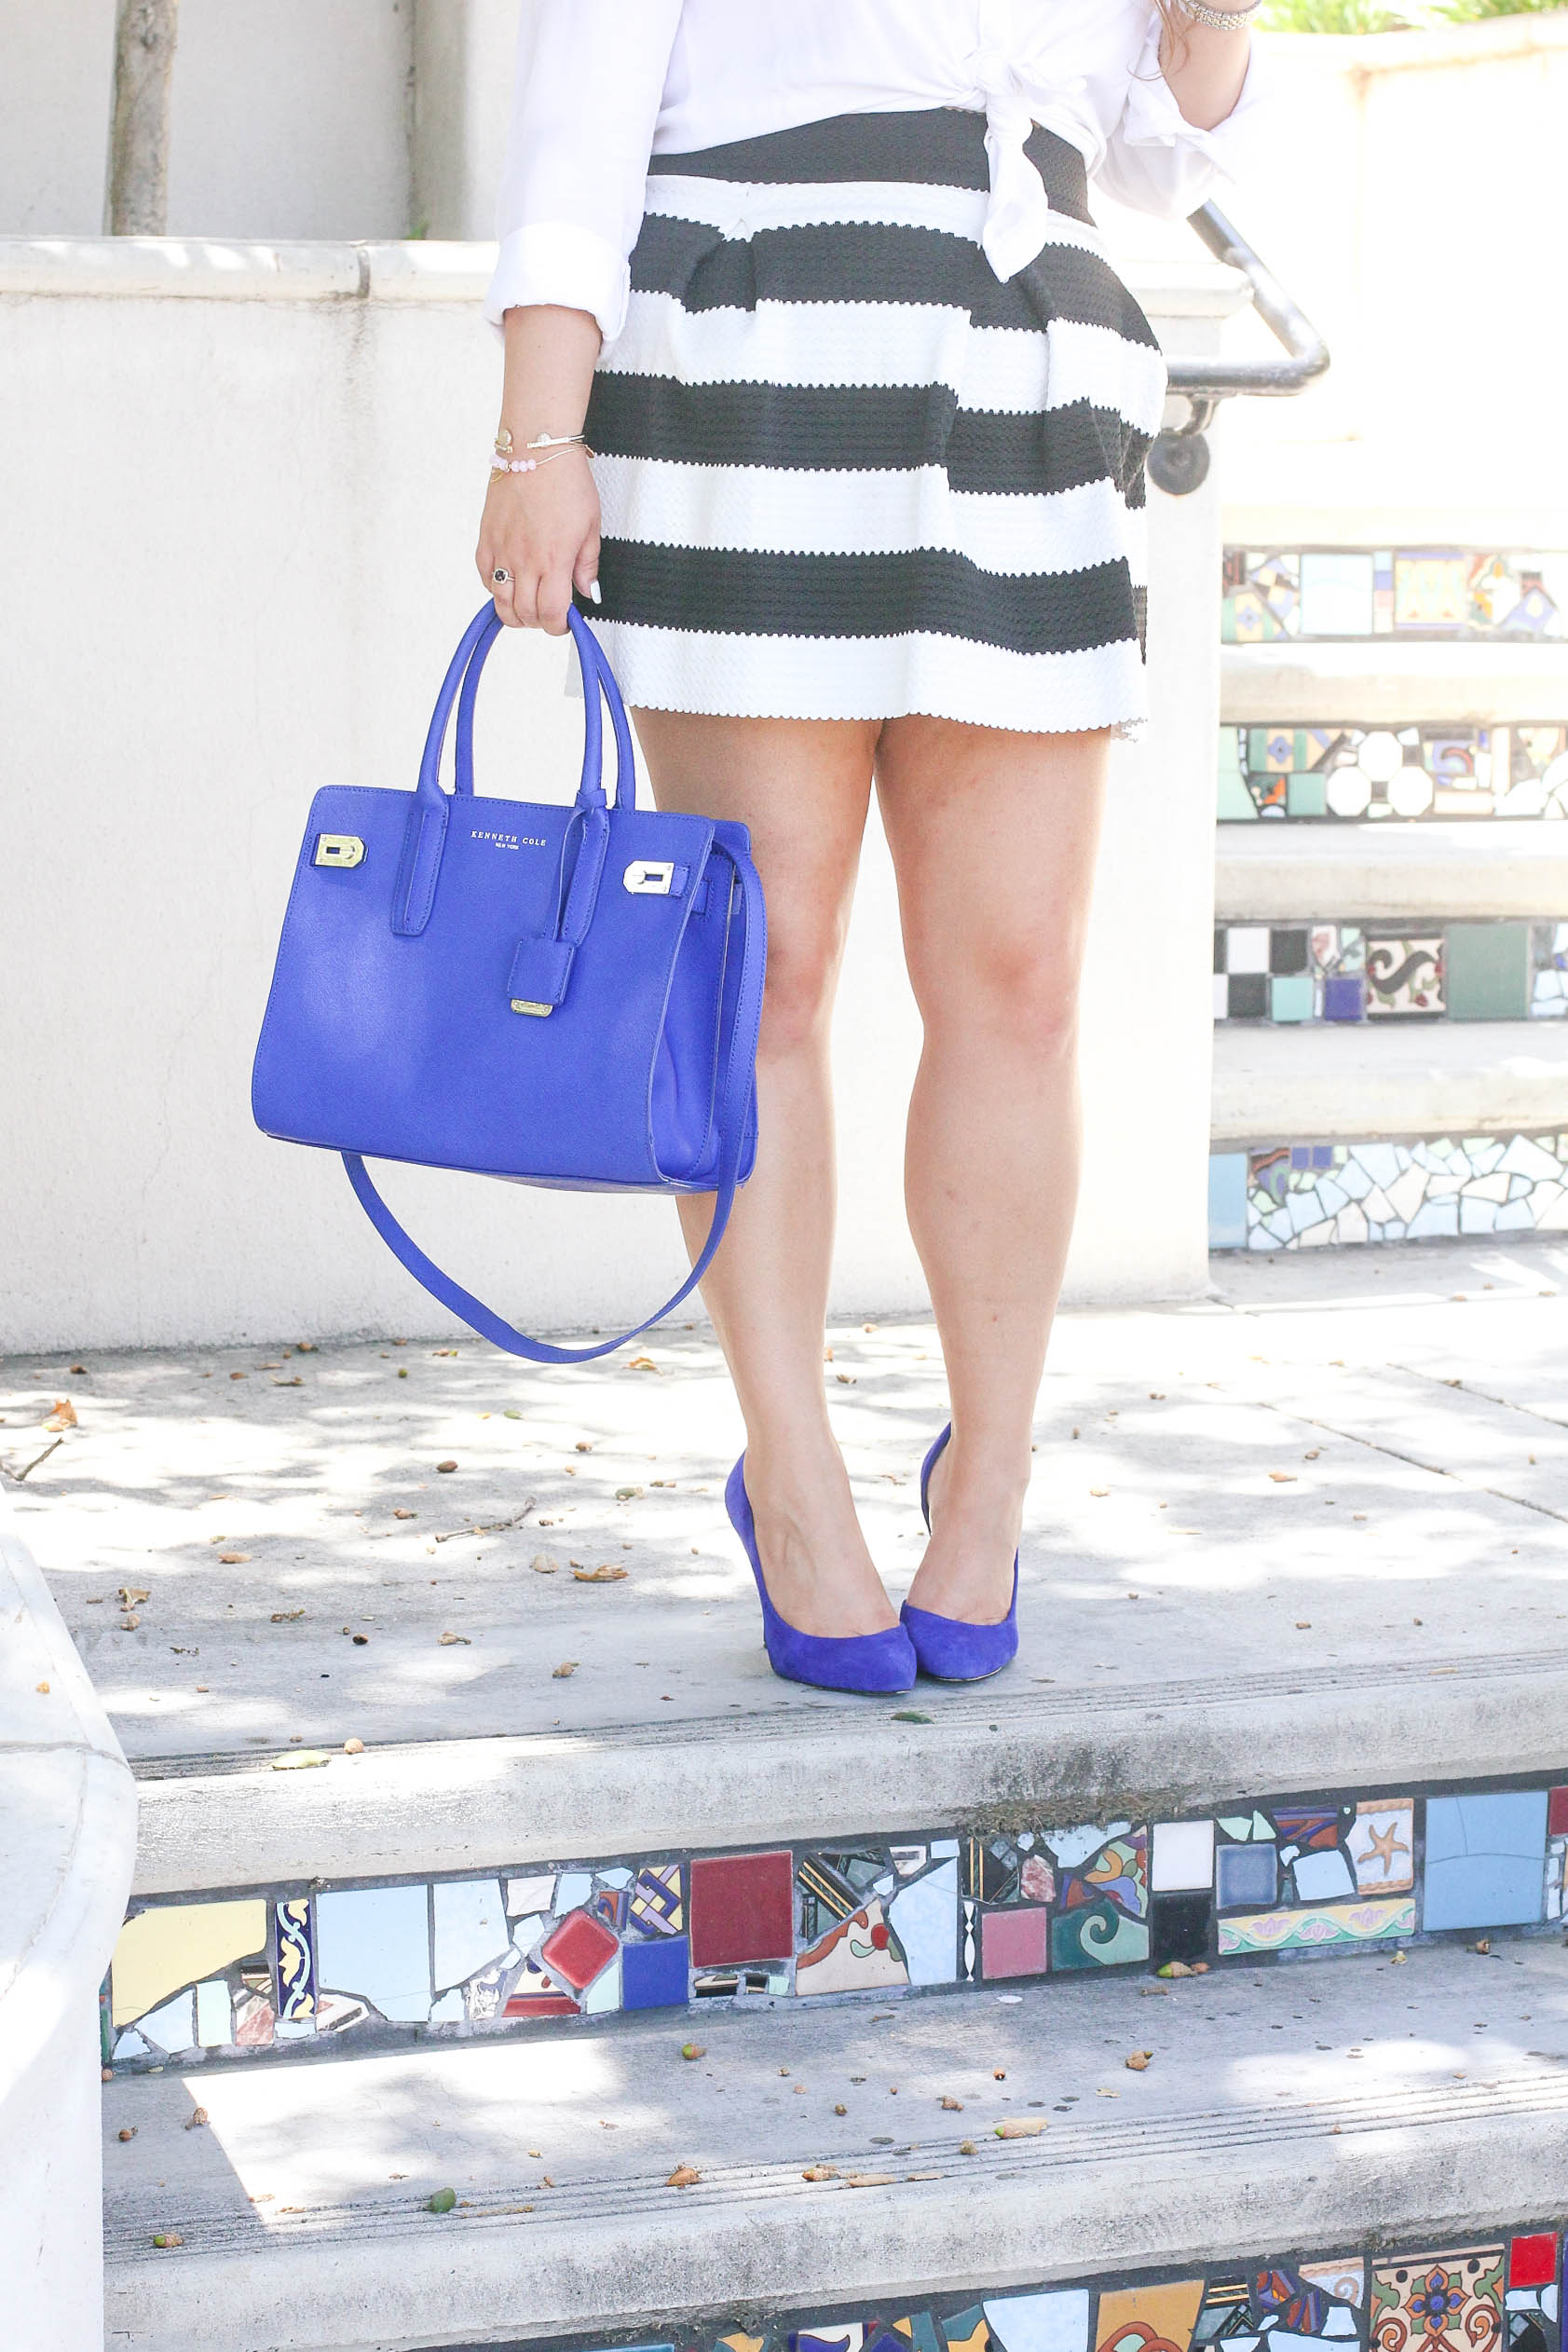 missyonmadison, missyonmadison isntagram, fashion blog, fashion blogger, style blog, style blogger, outfit inspo, outfit goals, bloglovin, style blogger, fashion blogger, fashion blog, style watch, cobalt blue pumps, cobalt blue bag, raybans, striped skater skirt, striped skirt, black and white striped skirt, white button down shirt, monday blues, how to style stripes, how to wear cobalt blue, how to add color to your wardrobe, la blogger,